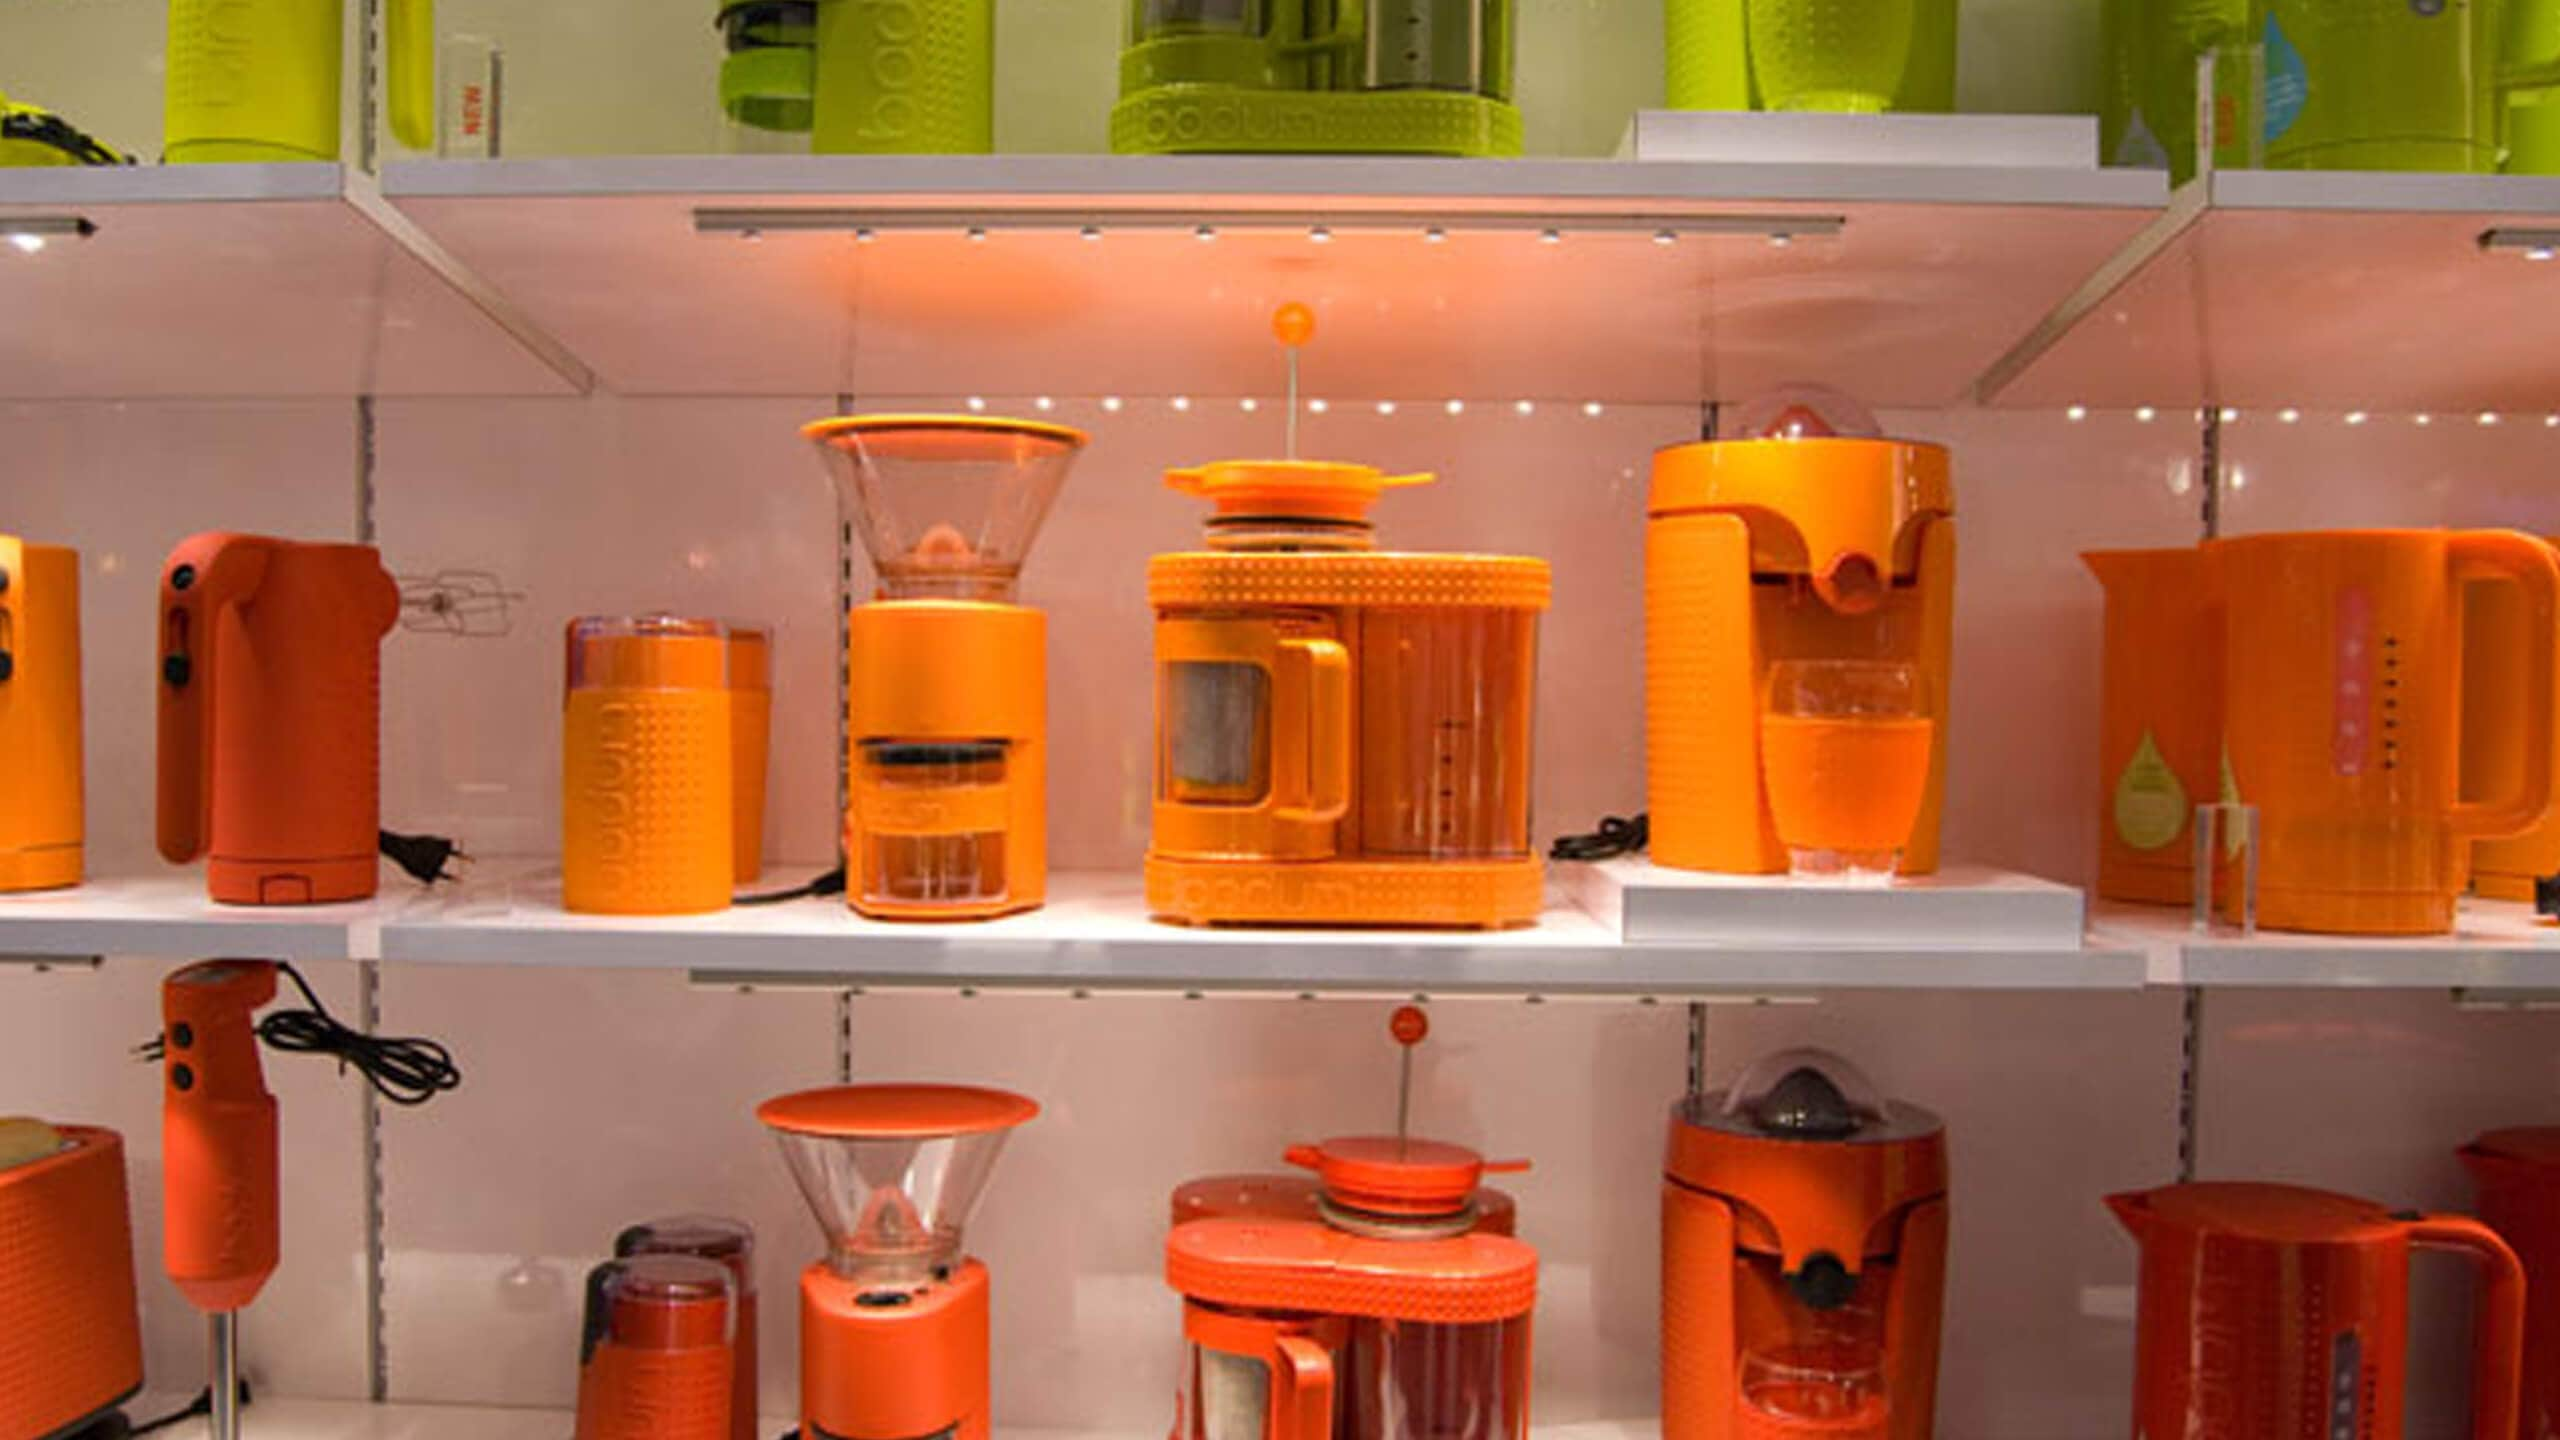 2010 INTERNATIONAL HOUSEWARES SHOW